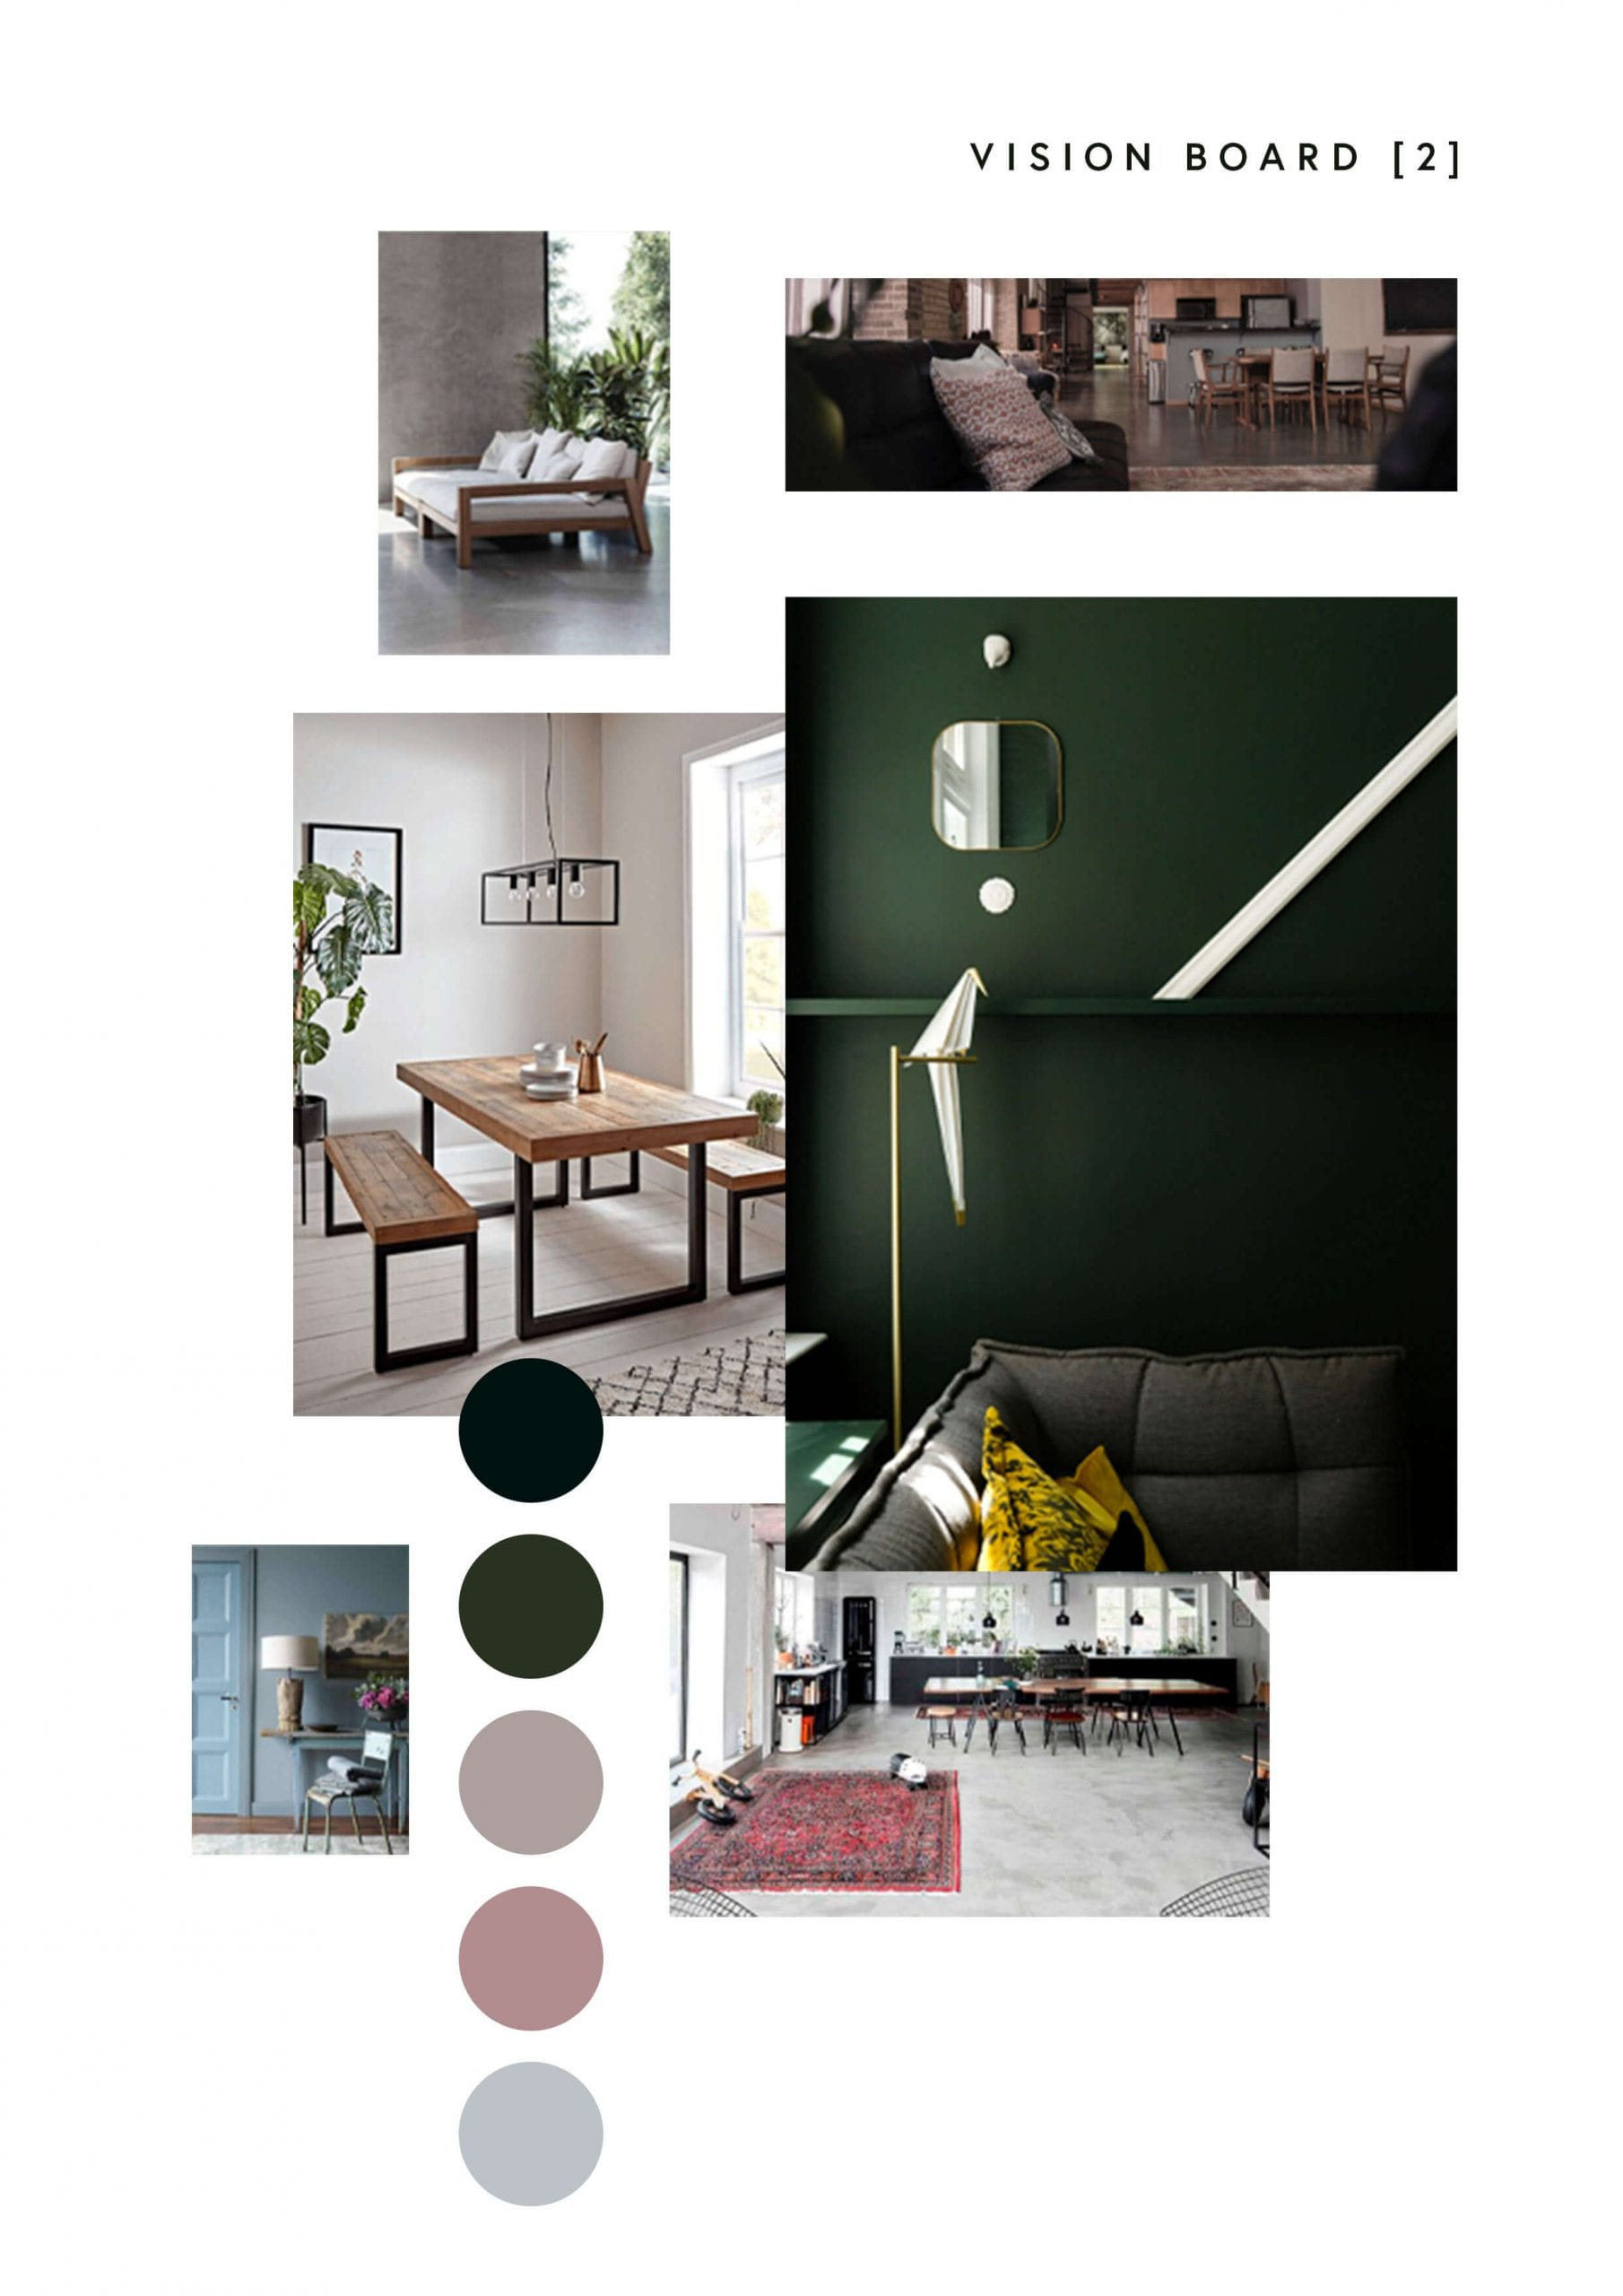 ann-rod-interior-styling-advice-visionboard-2